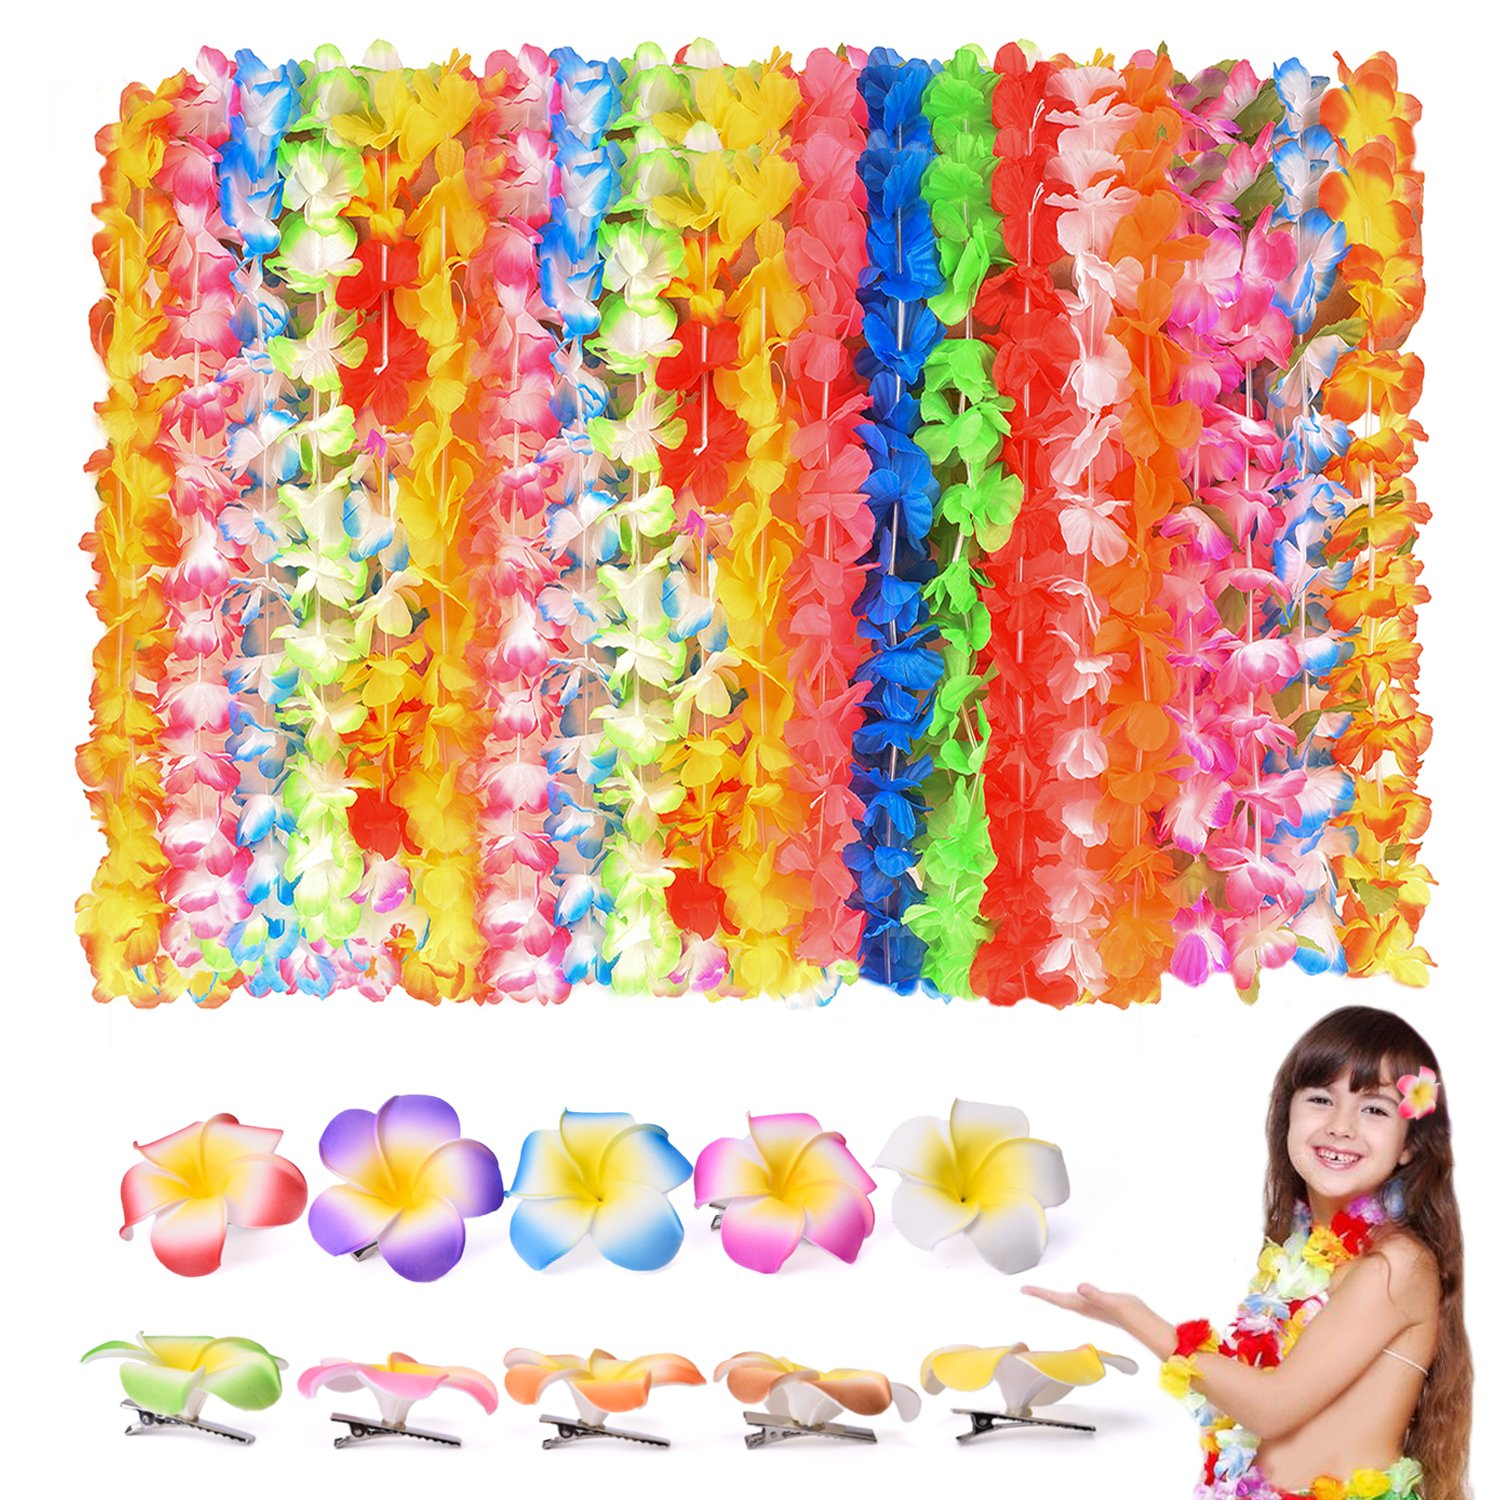 FUN LITTLE TOYS 40 PCs Tropical Hawaiian Leis Ruffled Flowers Necklaces And 10 Pieces Hawaiian Luau Flower Lei Hair Clip for Party Supplies, Beach Party Decorations, Birthday Party Favors by FUN LITTLE TOYS